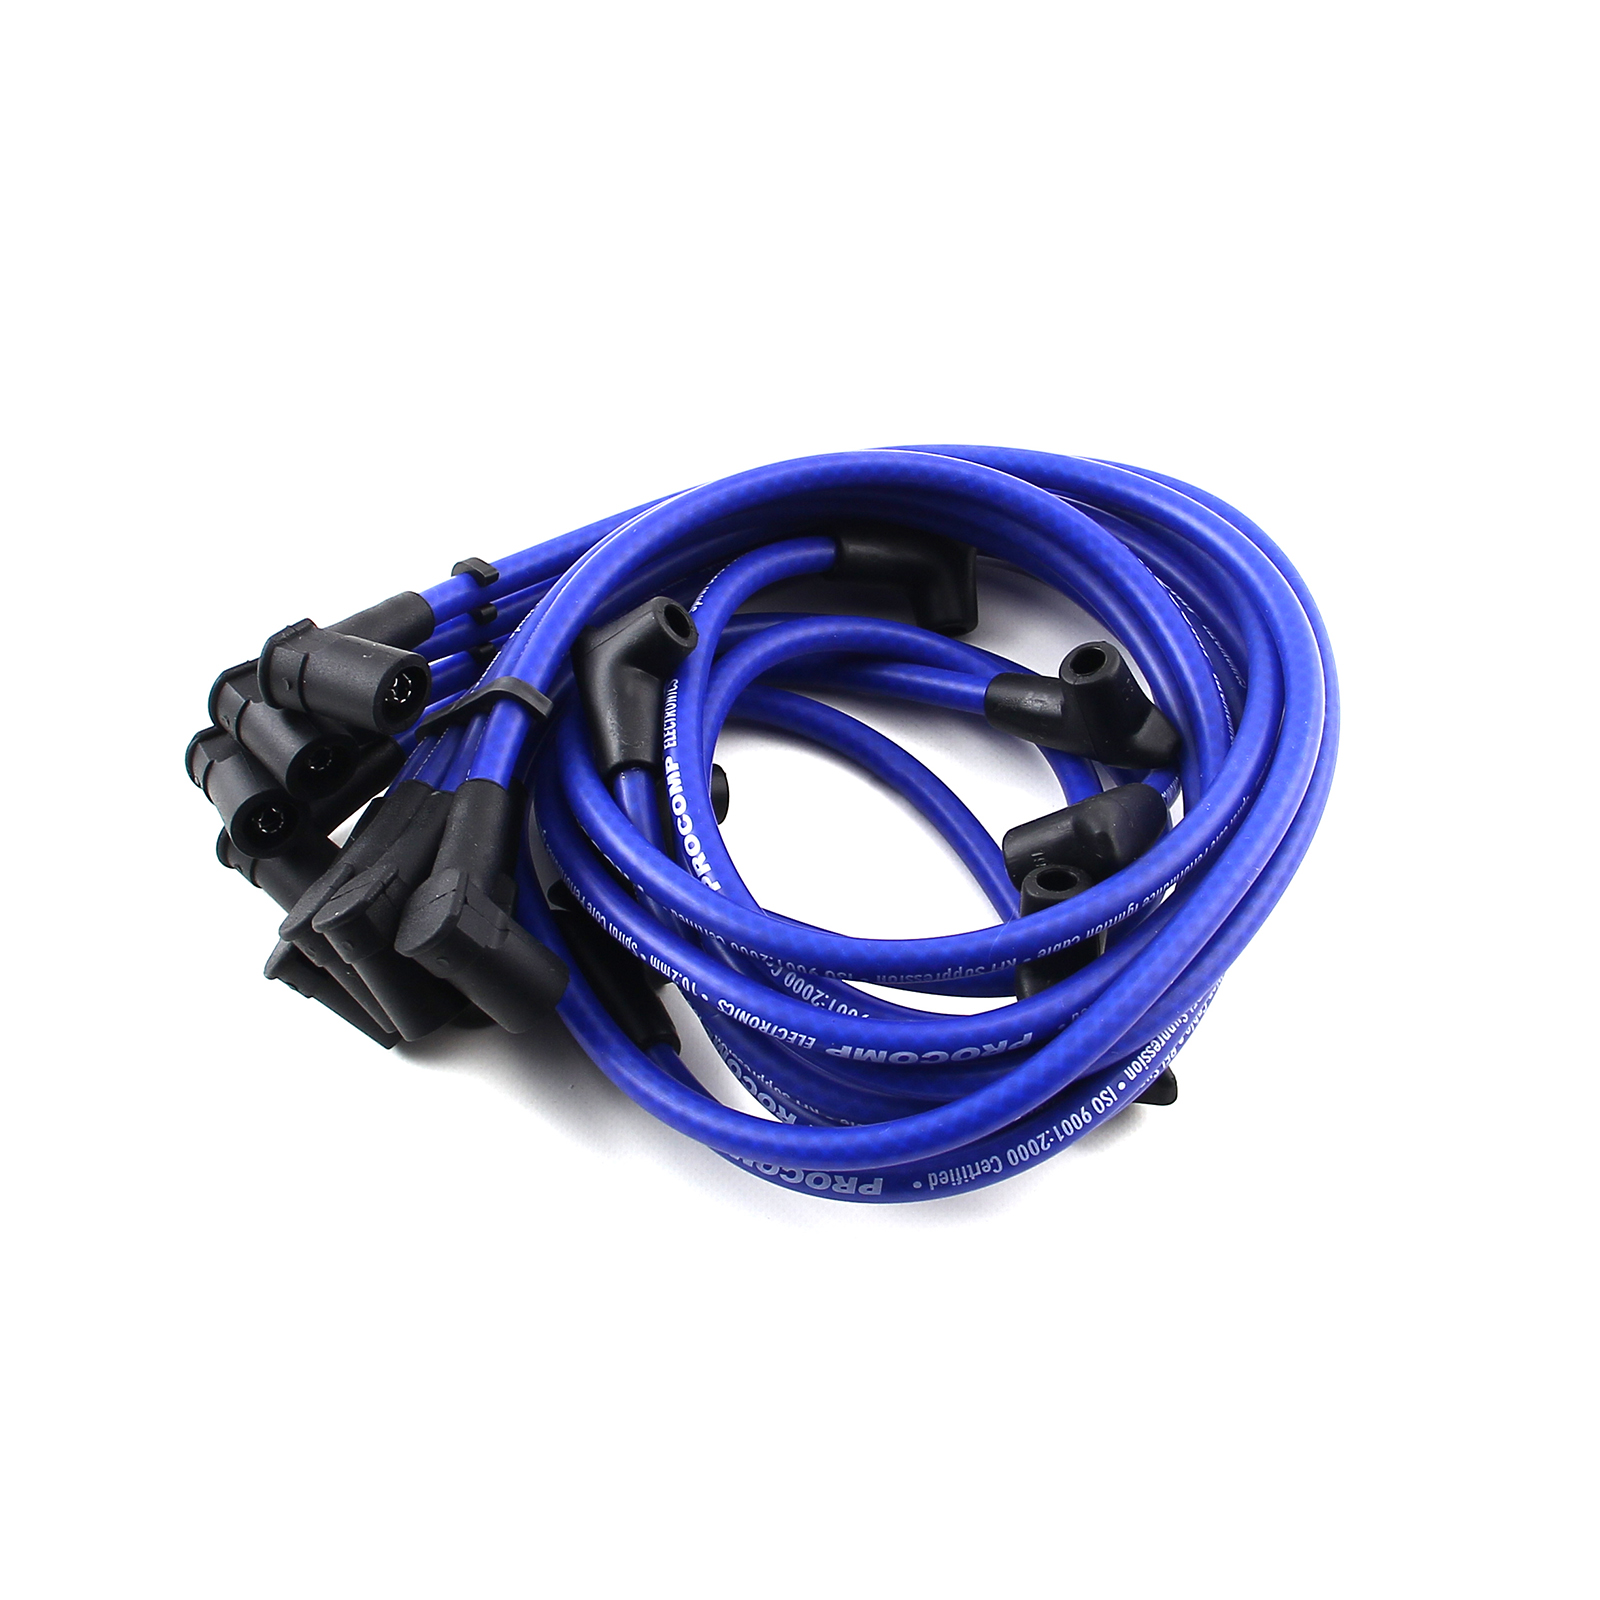 Universal 90 Deg to 90 Deg Over Covers Female Blue Spark Plug Wires Suits Chevy